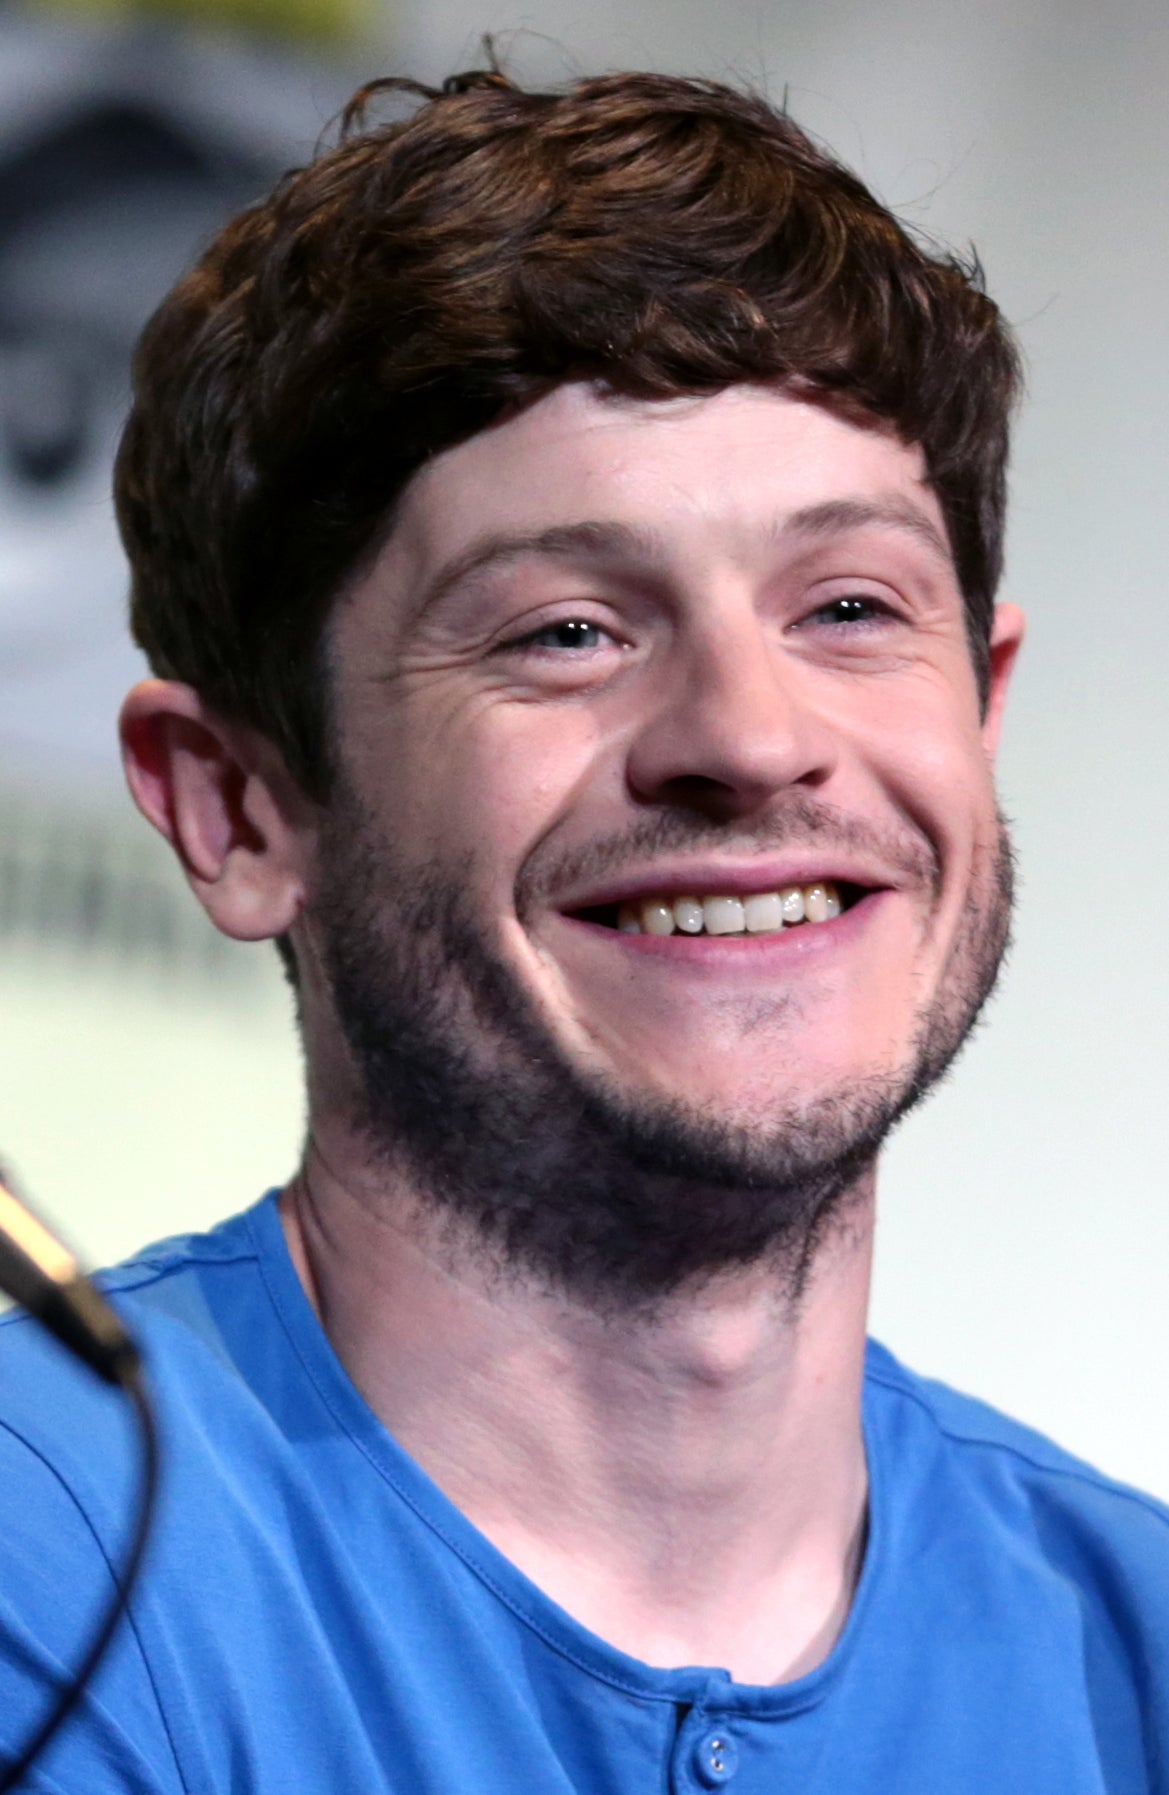 Game of Thrones Ramsay Bolton Naked - 4 Times Iwan Rheon got naked on camera